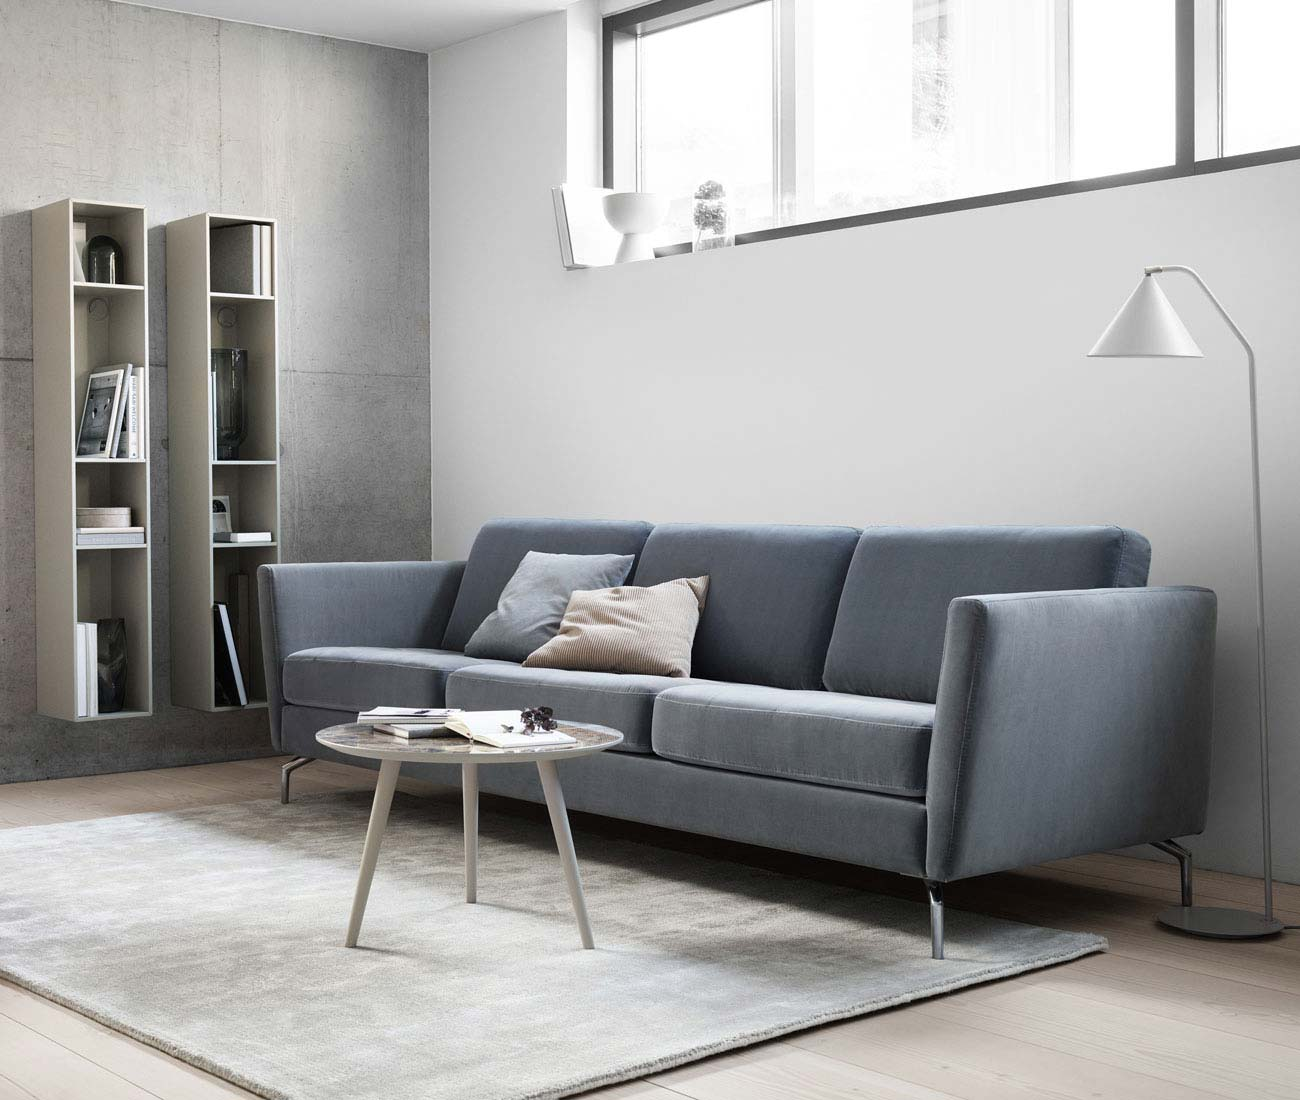 Spacious 3 Seater Sofa Designs Boconcept Sofas